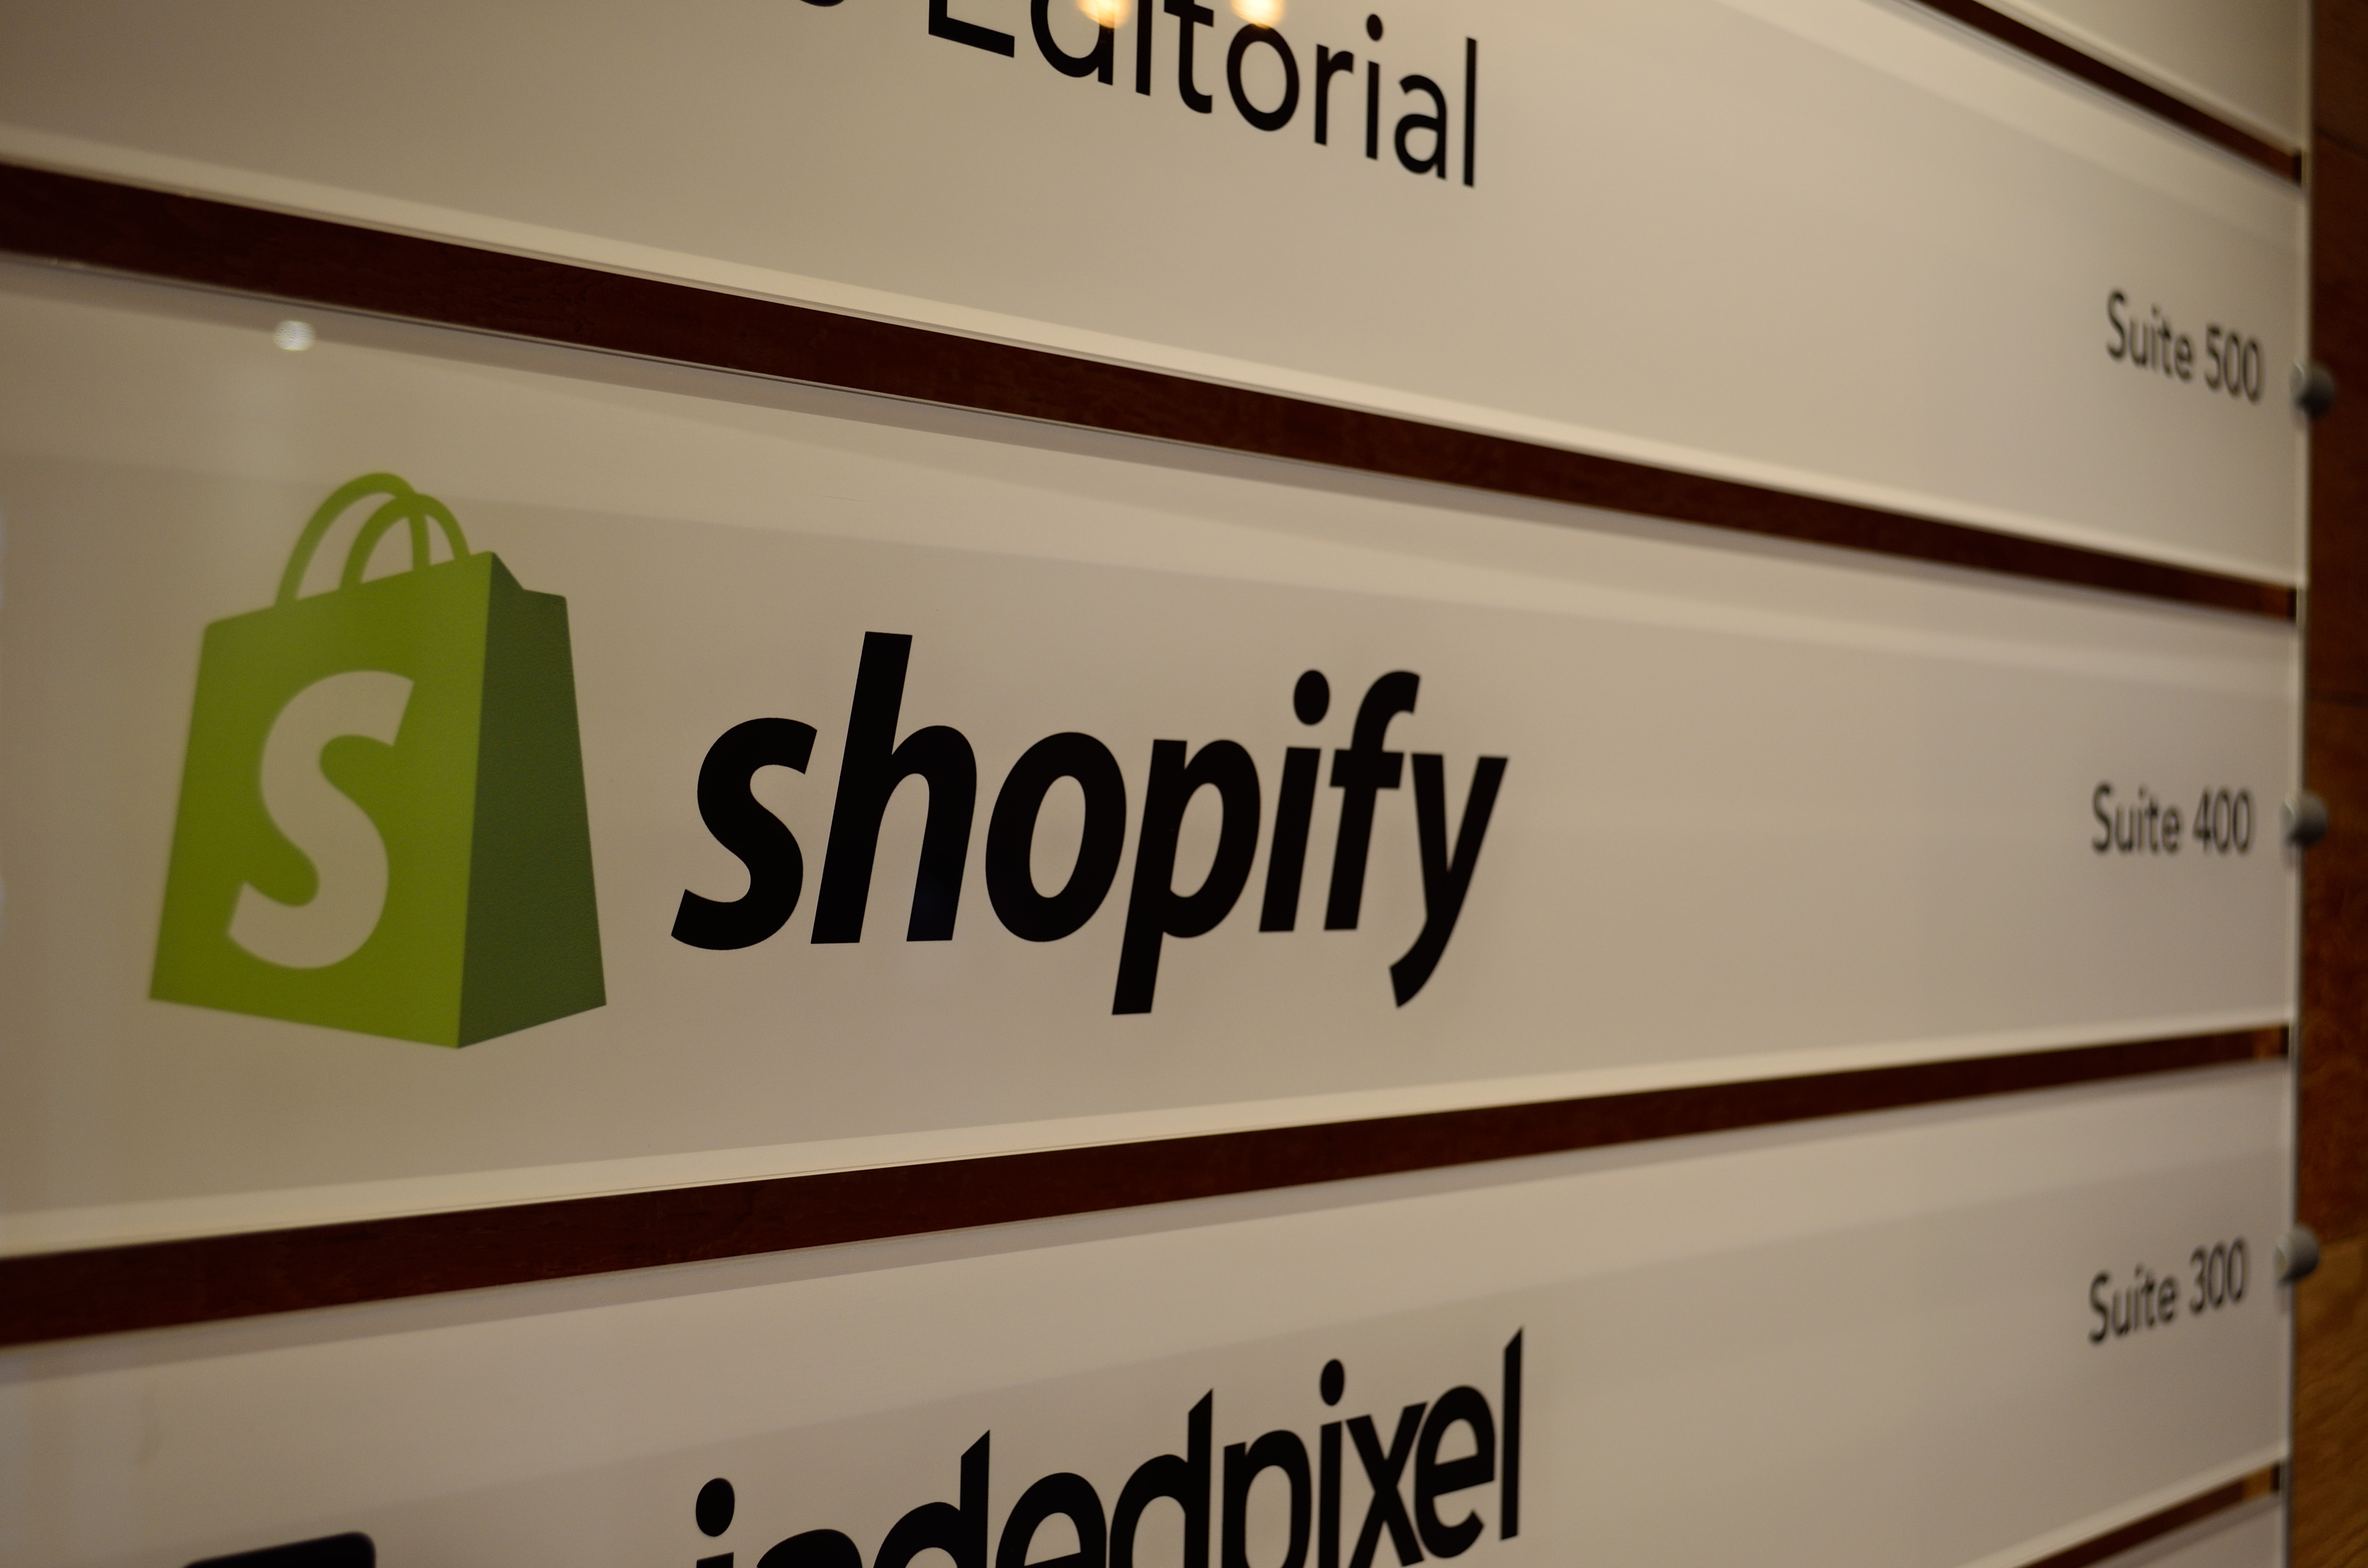 Multisafepay betaalprovider op Shopify - Emerce Multisafepay